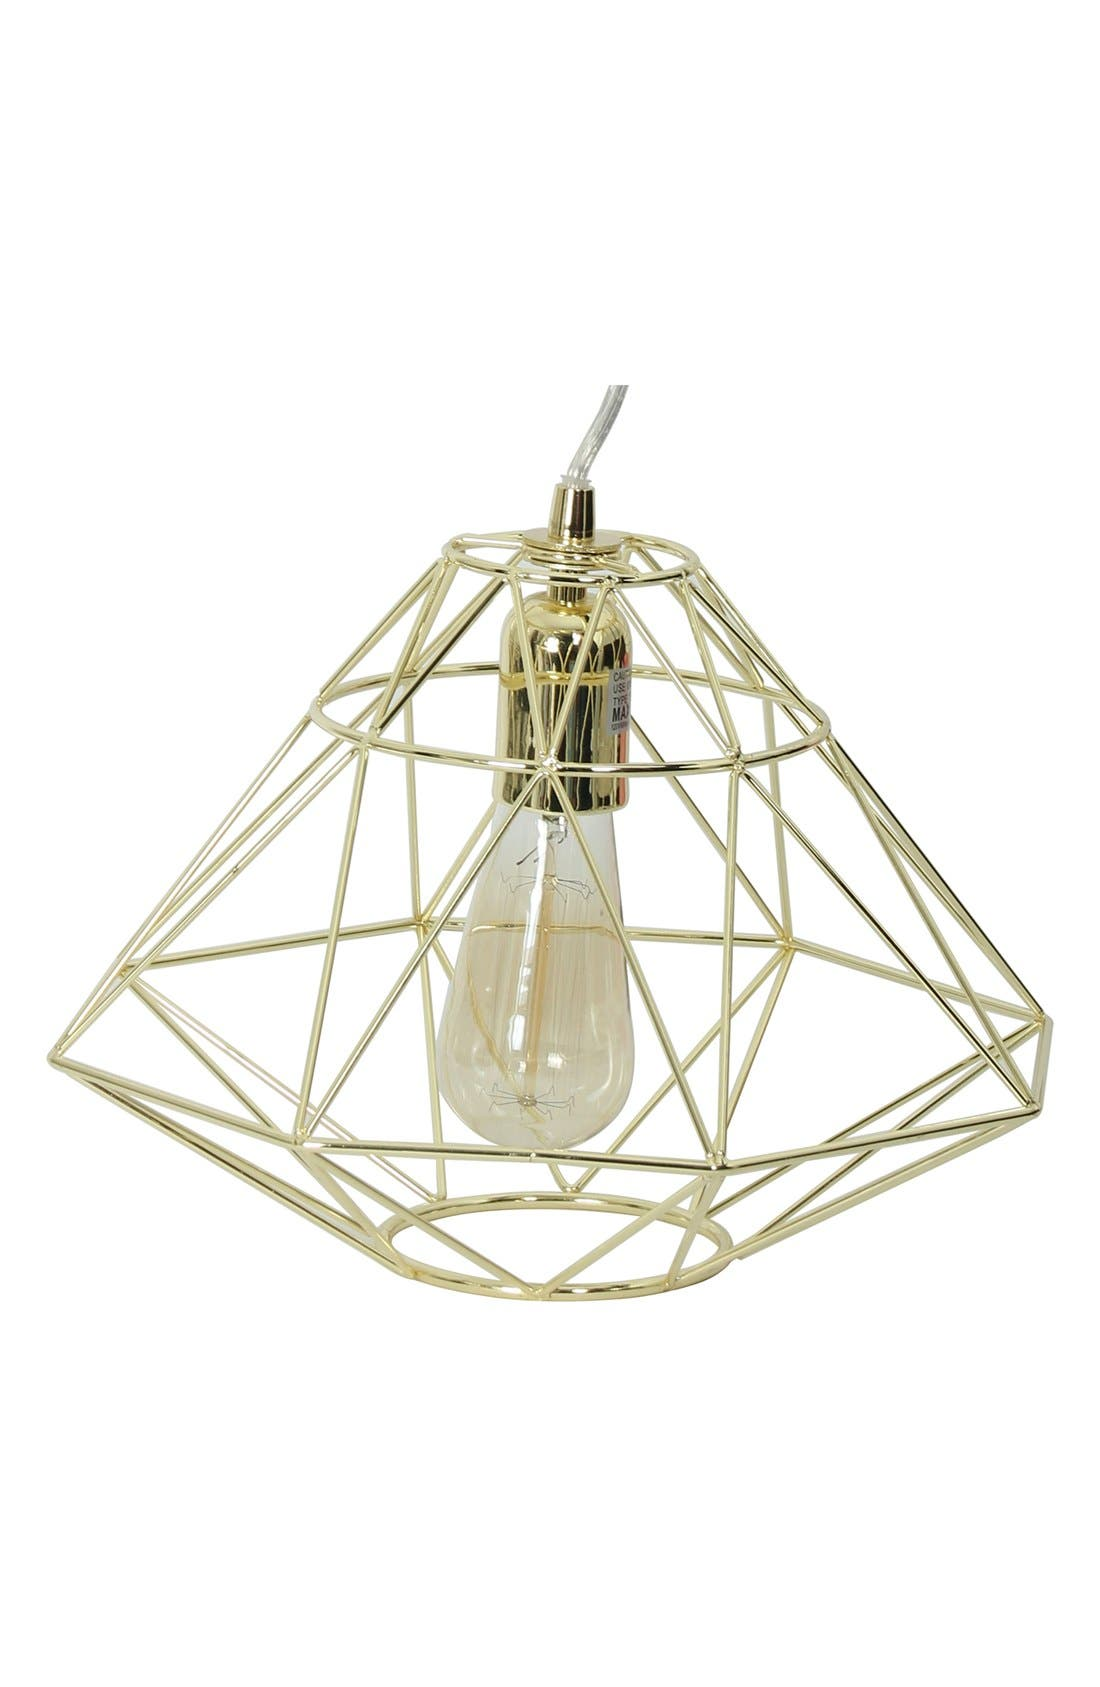 Alternate Image 1 Selected - Crystal Art Gallery 'Diamond' Caged Edison Bulb Pendant Lamp